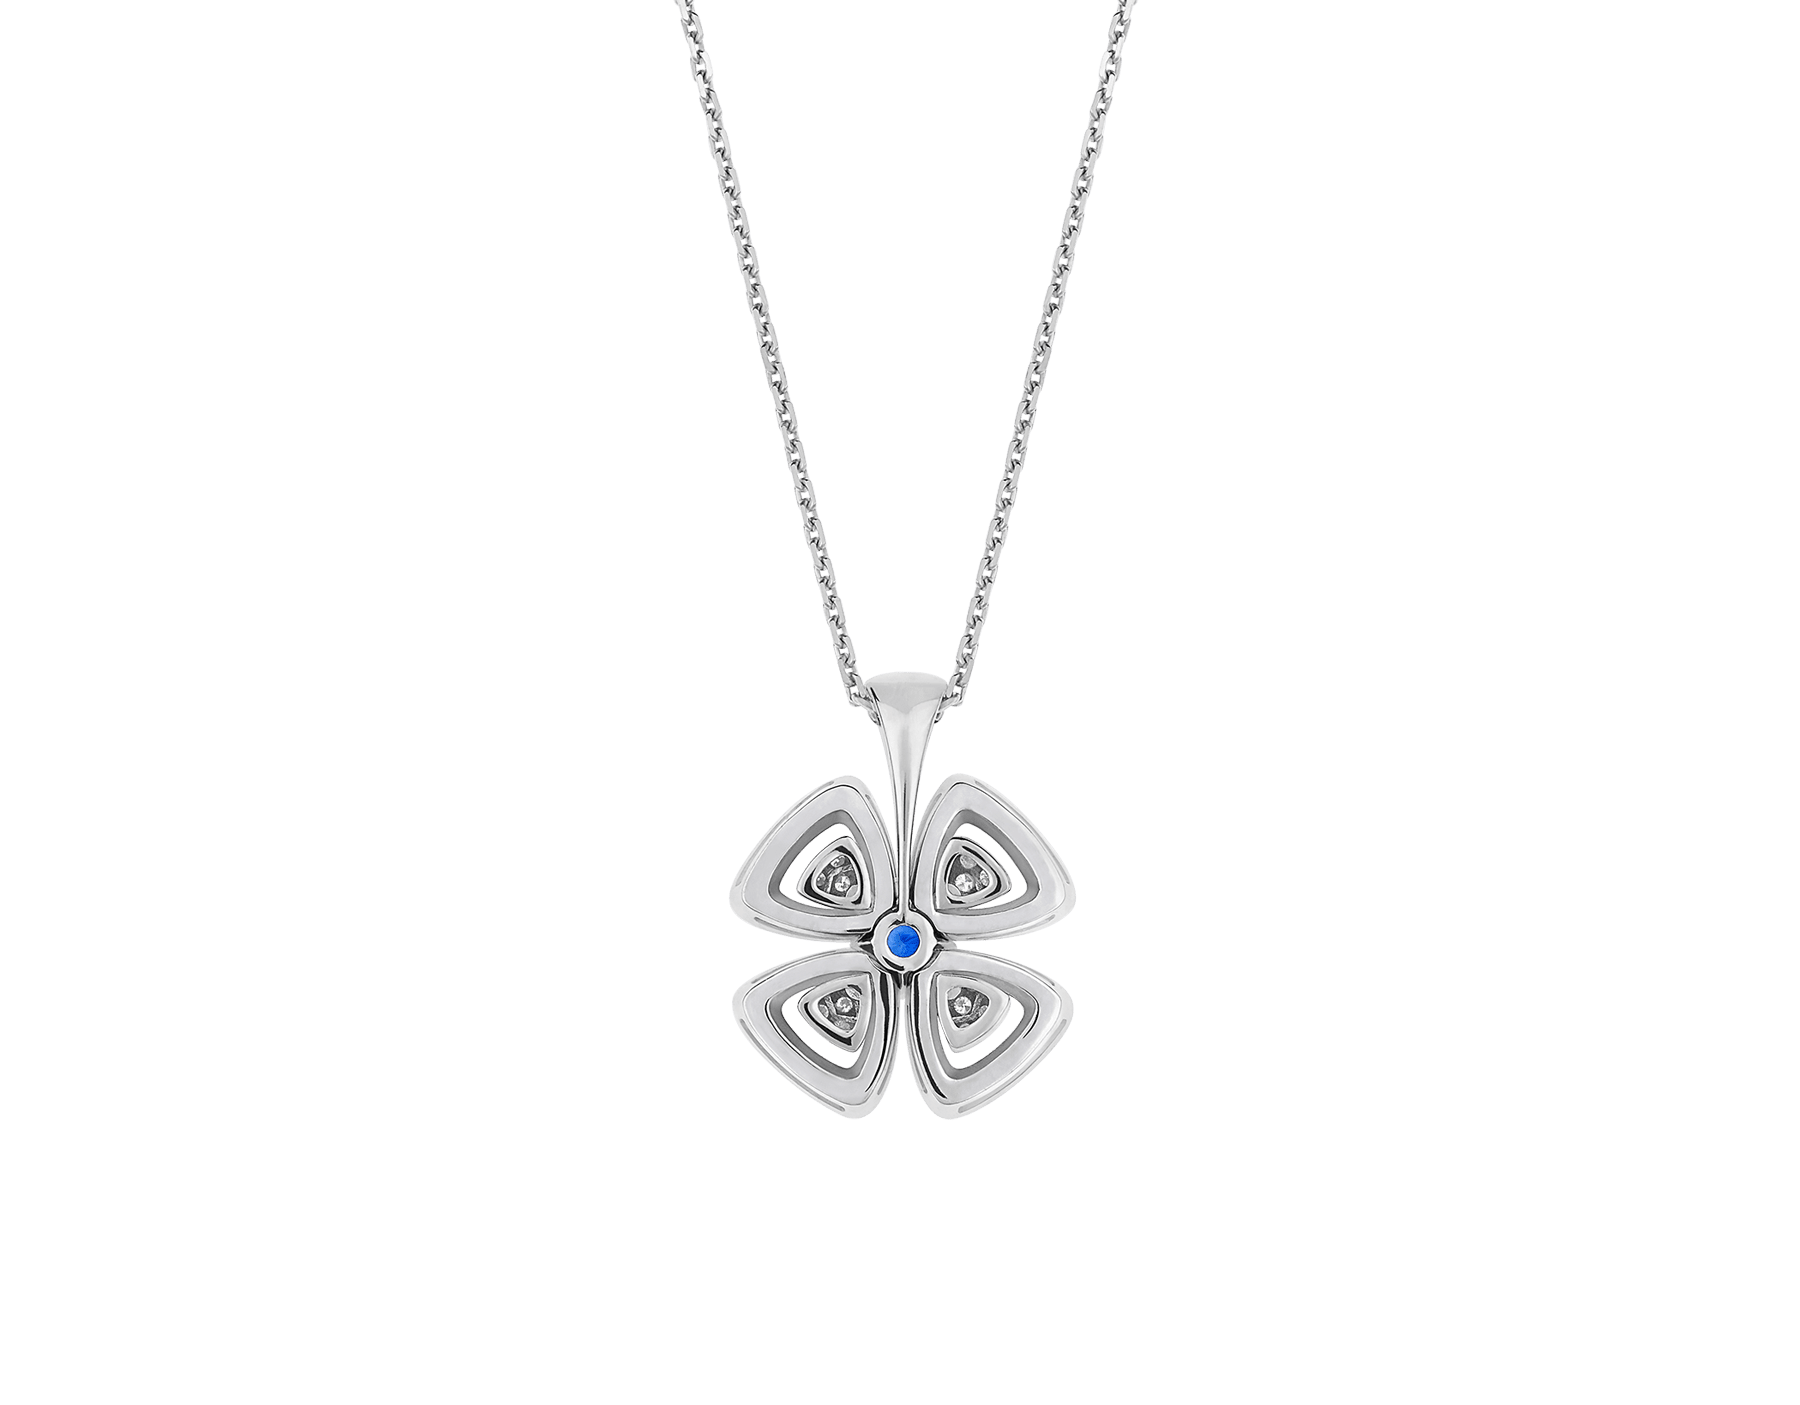 Fiorever 18 kt white gold pendant necklace set with a central brilliant-cut sapphire (0.43 ct) and pavé diamonds (0.31 ct) 358426 image 4